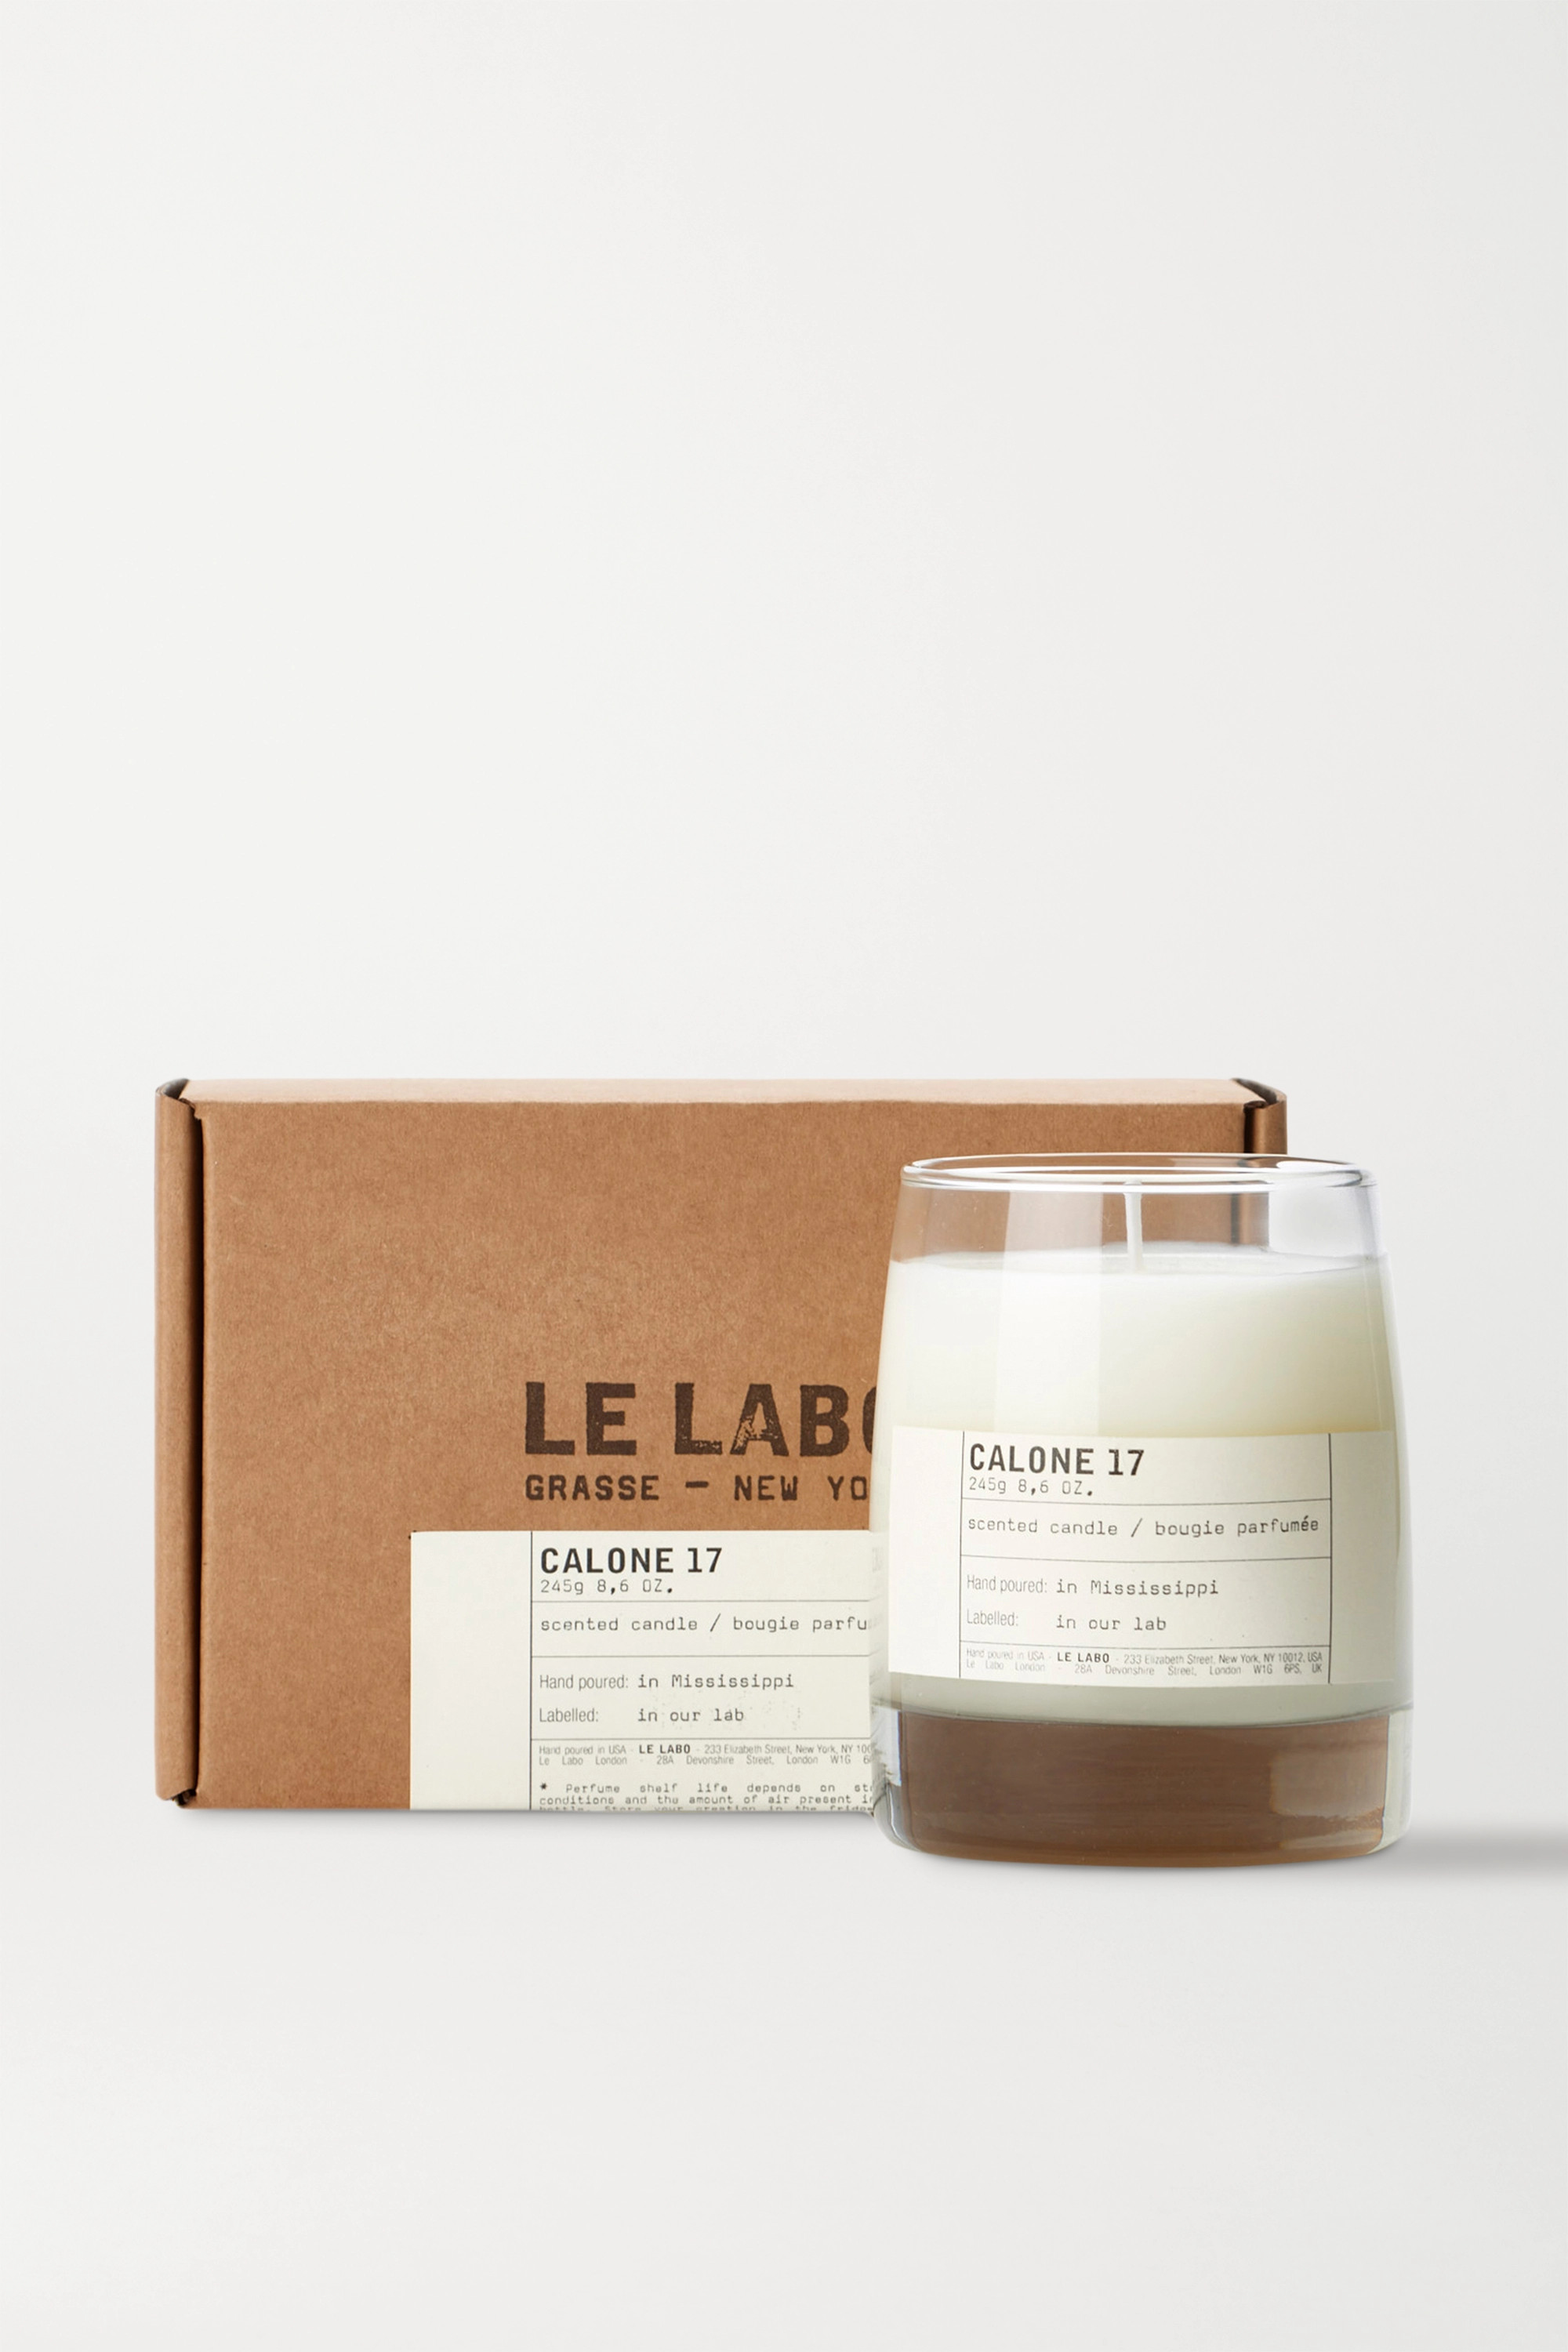 Le Labo Calone 17 scented candle, 245g